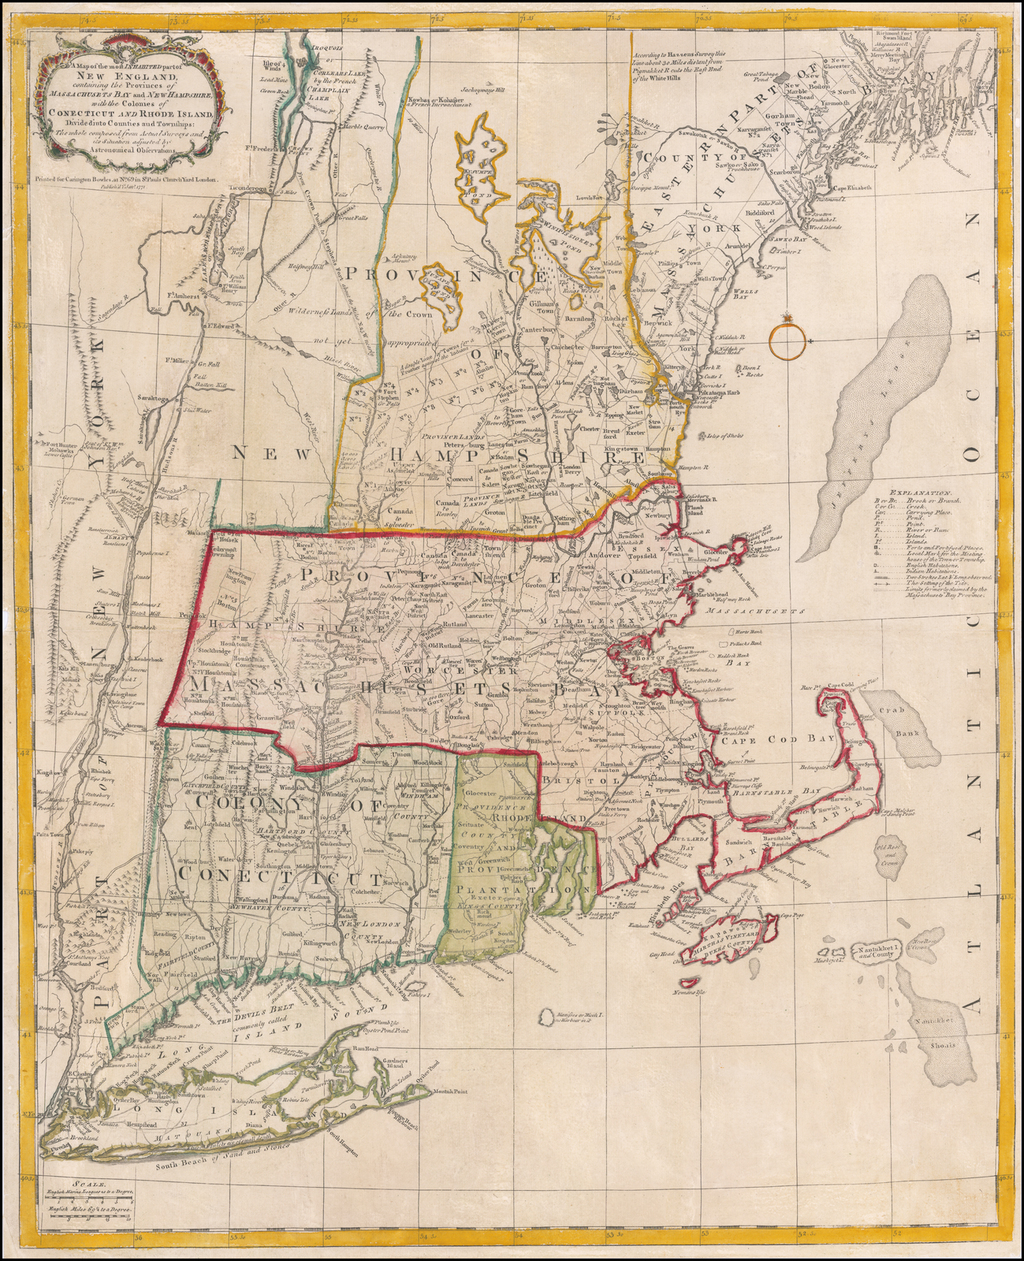 A Map of the most Inhabited part of New England, containing the Provinces of Massachusets Bay and New Hampshire, with the Colonies of Conecticut and Rhode Island, Divided into Counties and Townships . . . 1771 By Carrington Bowles